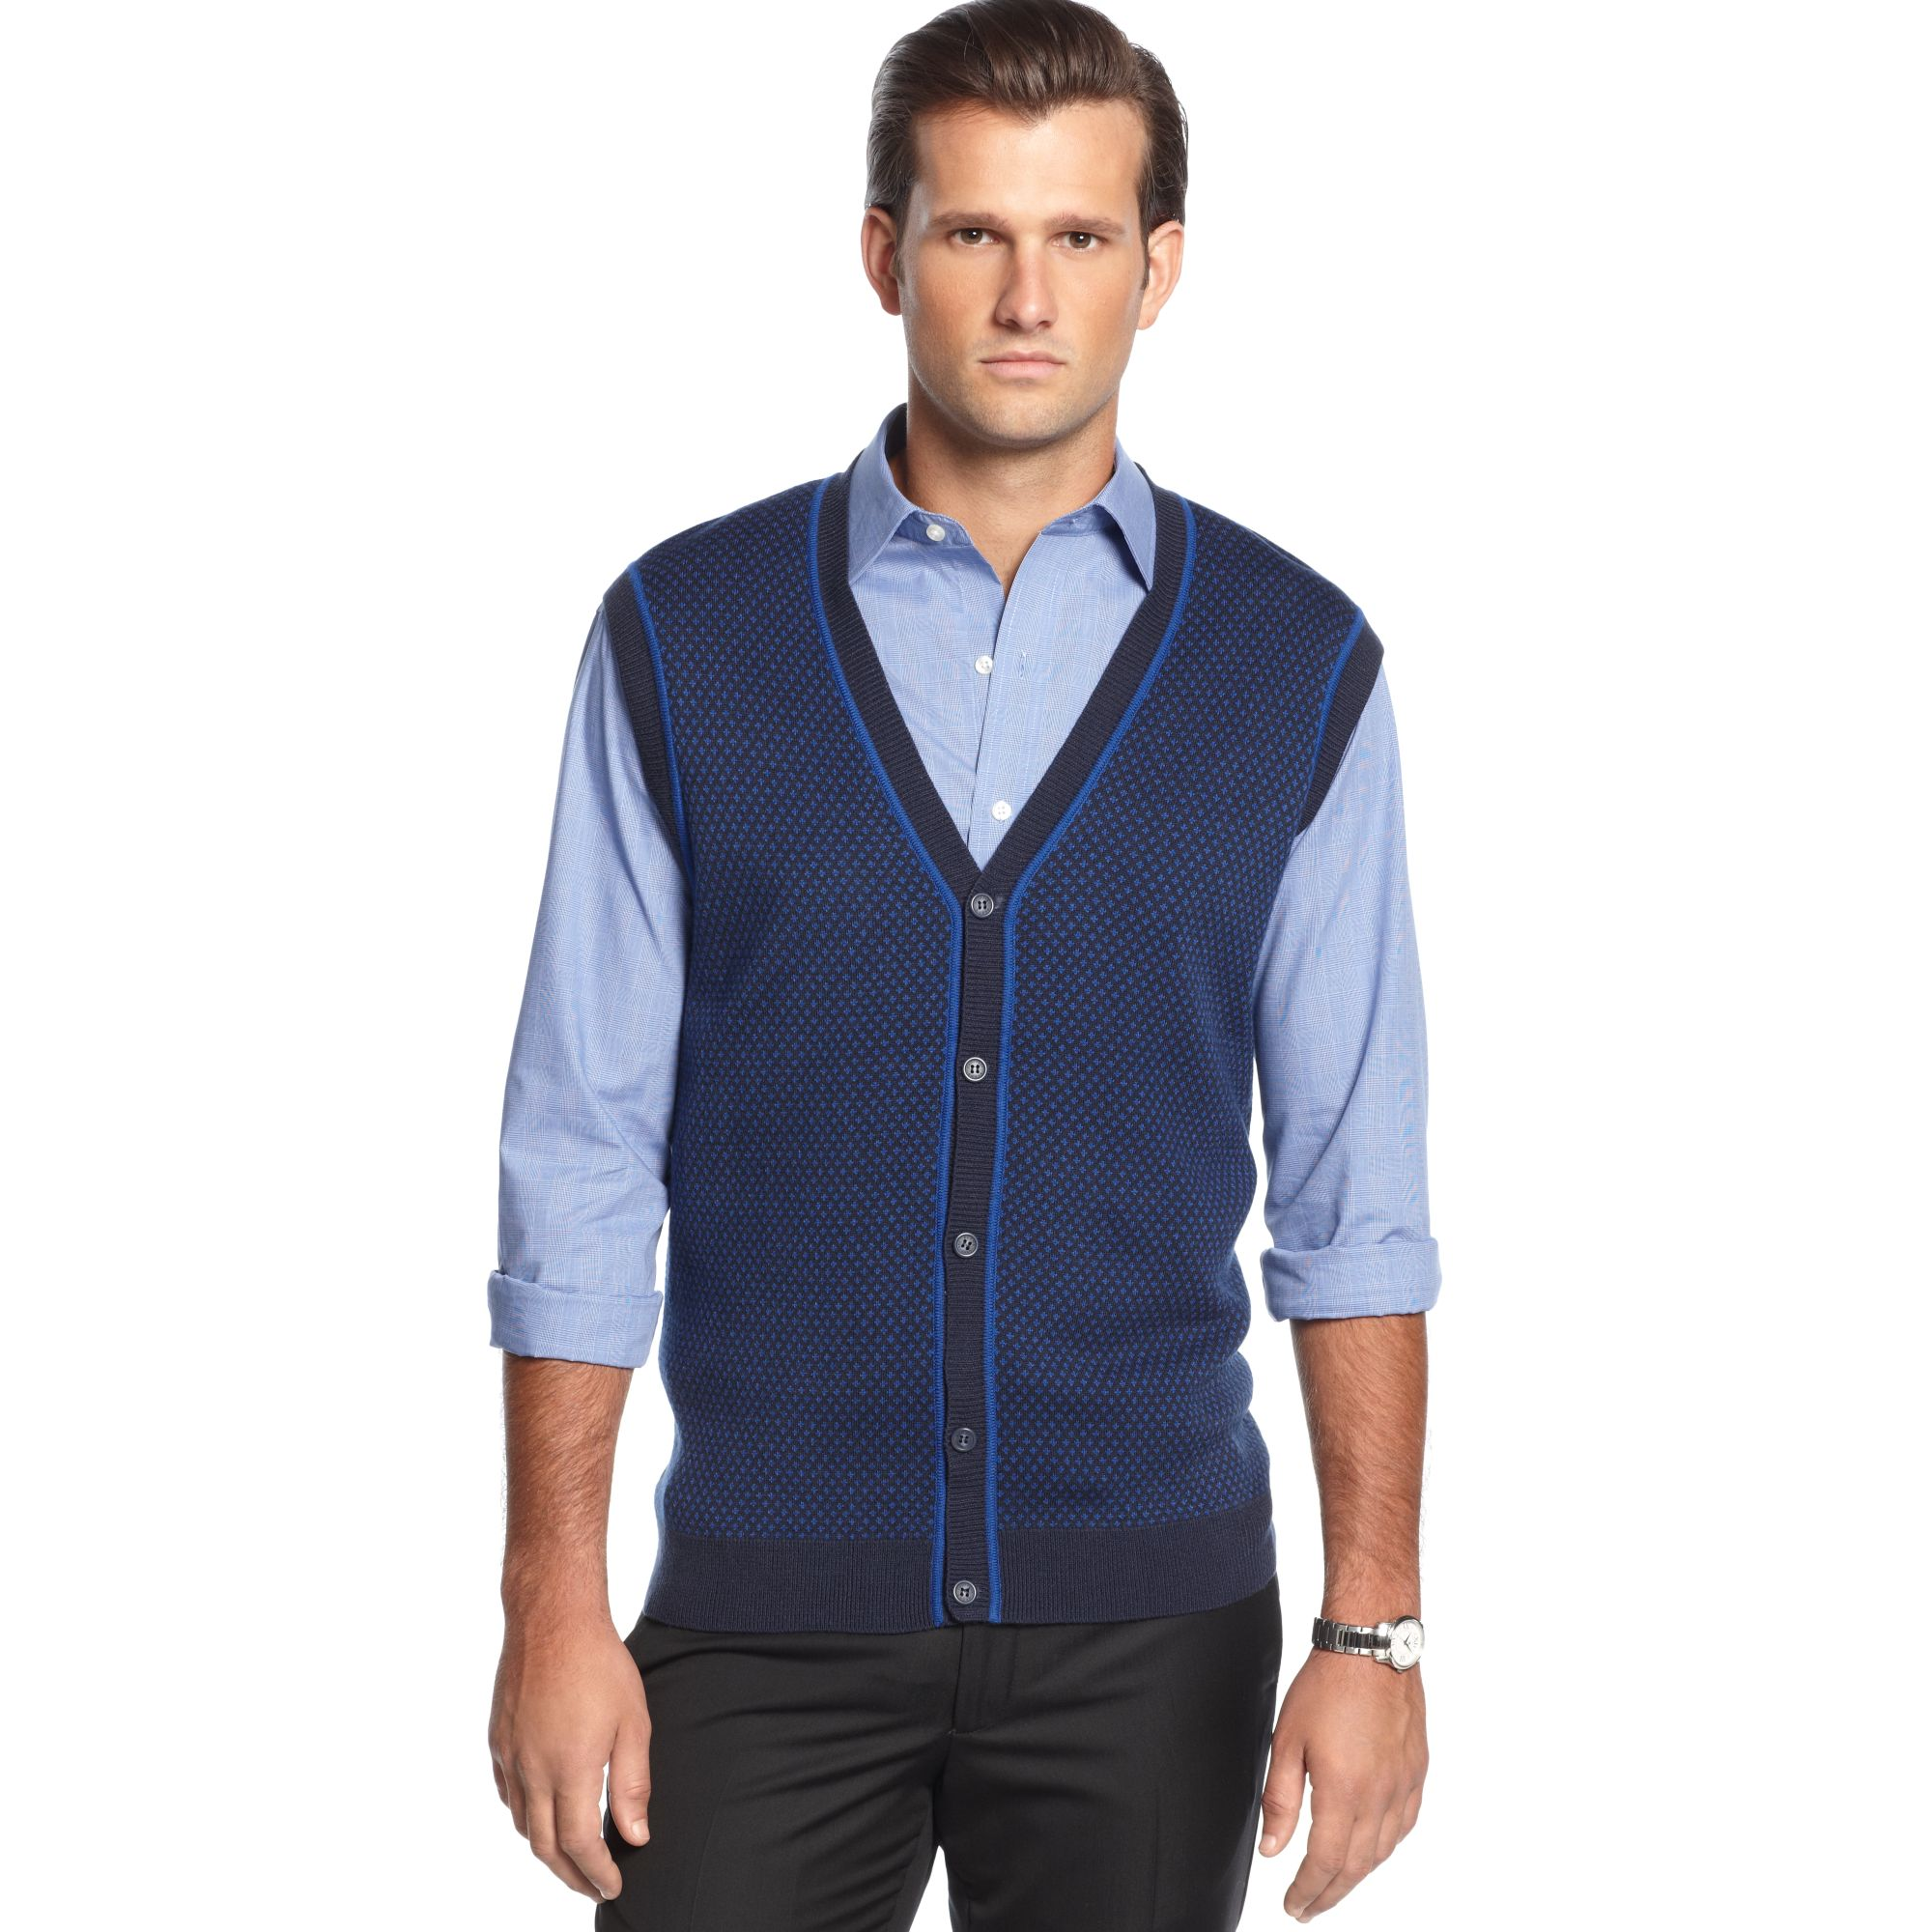 Geoffrey beene Button Front Vneck Birdseye Sweater Vest in Blue ...